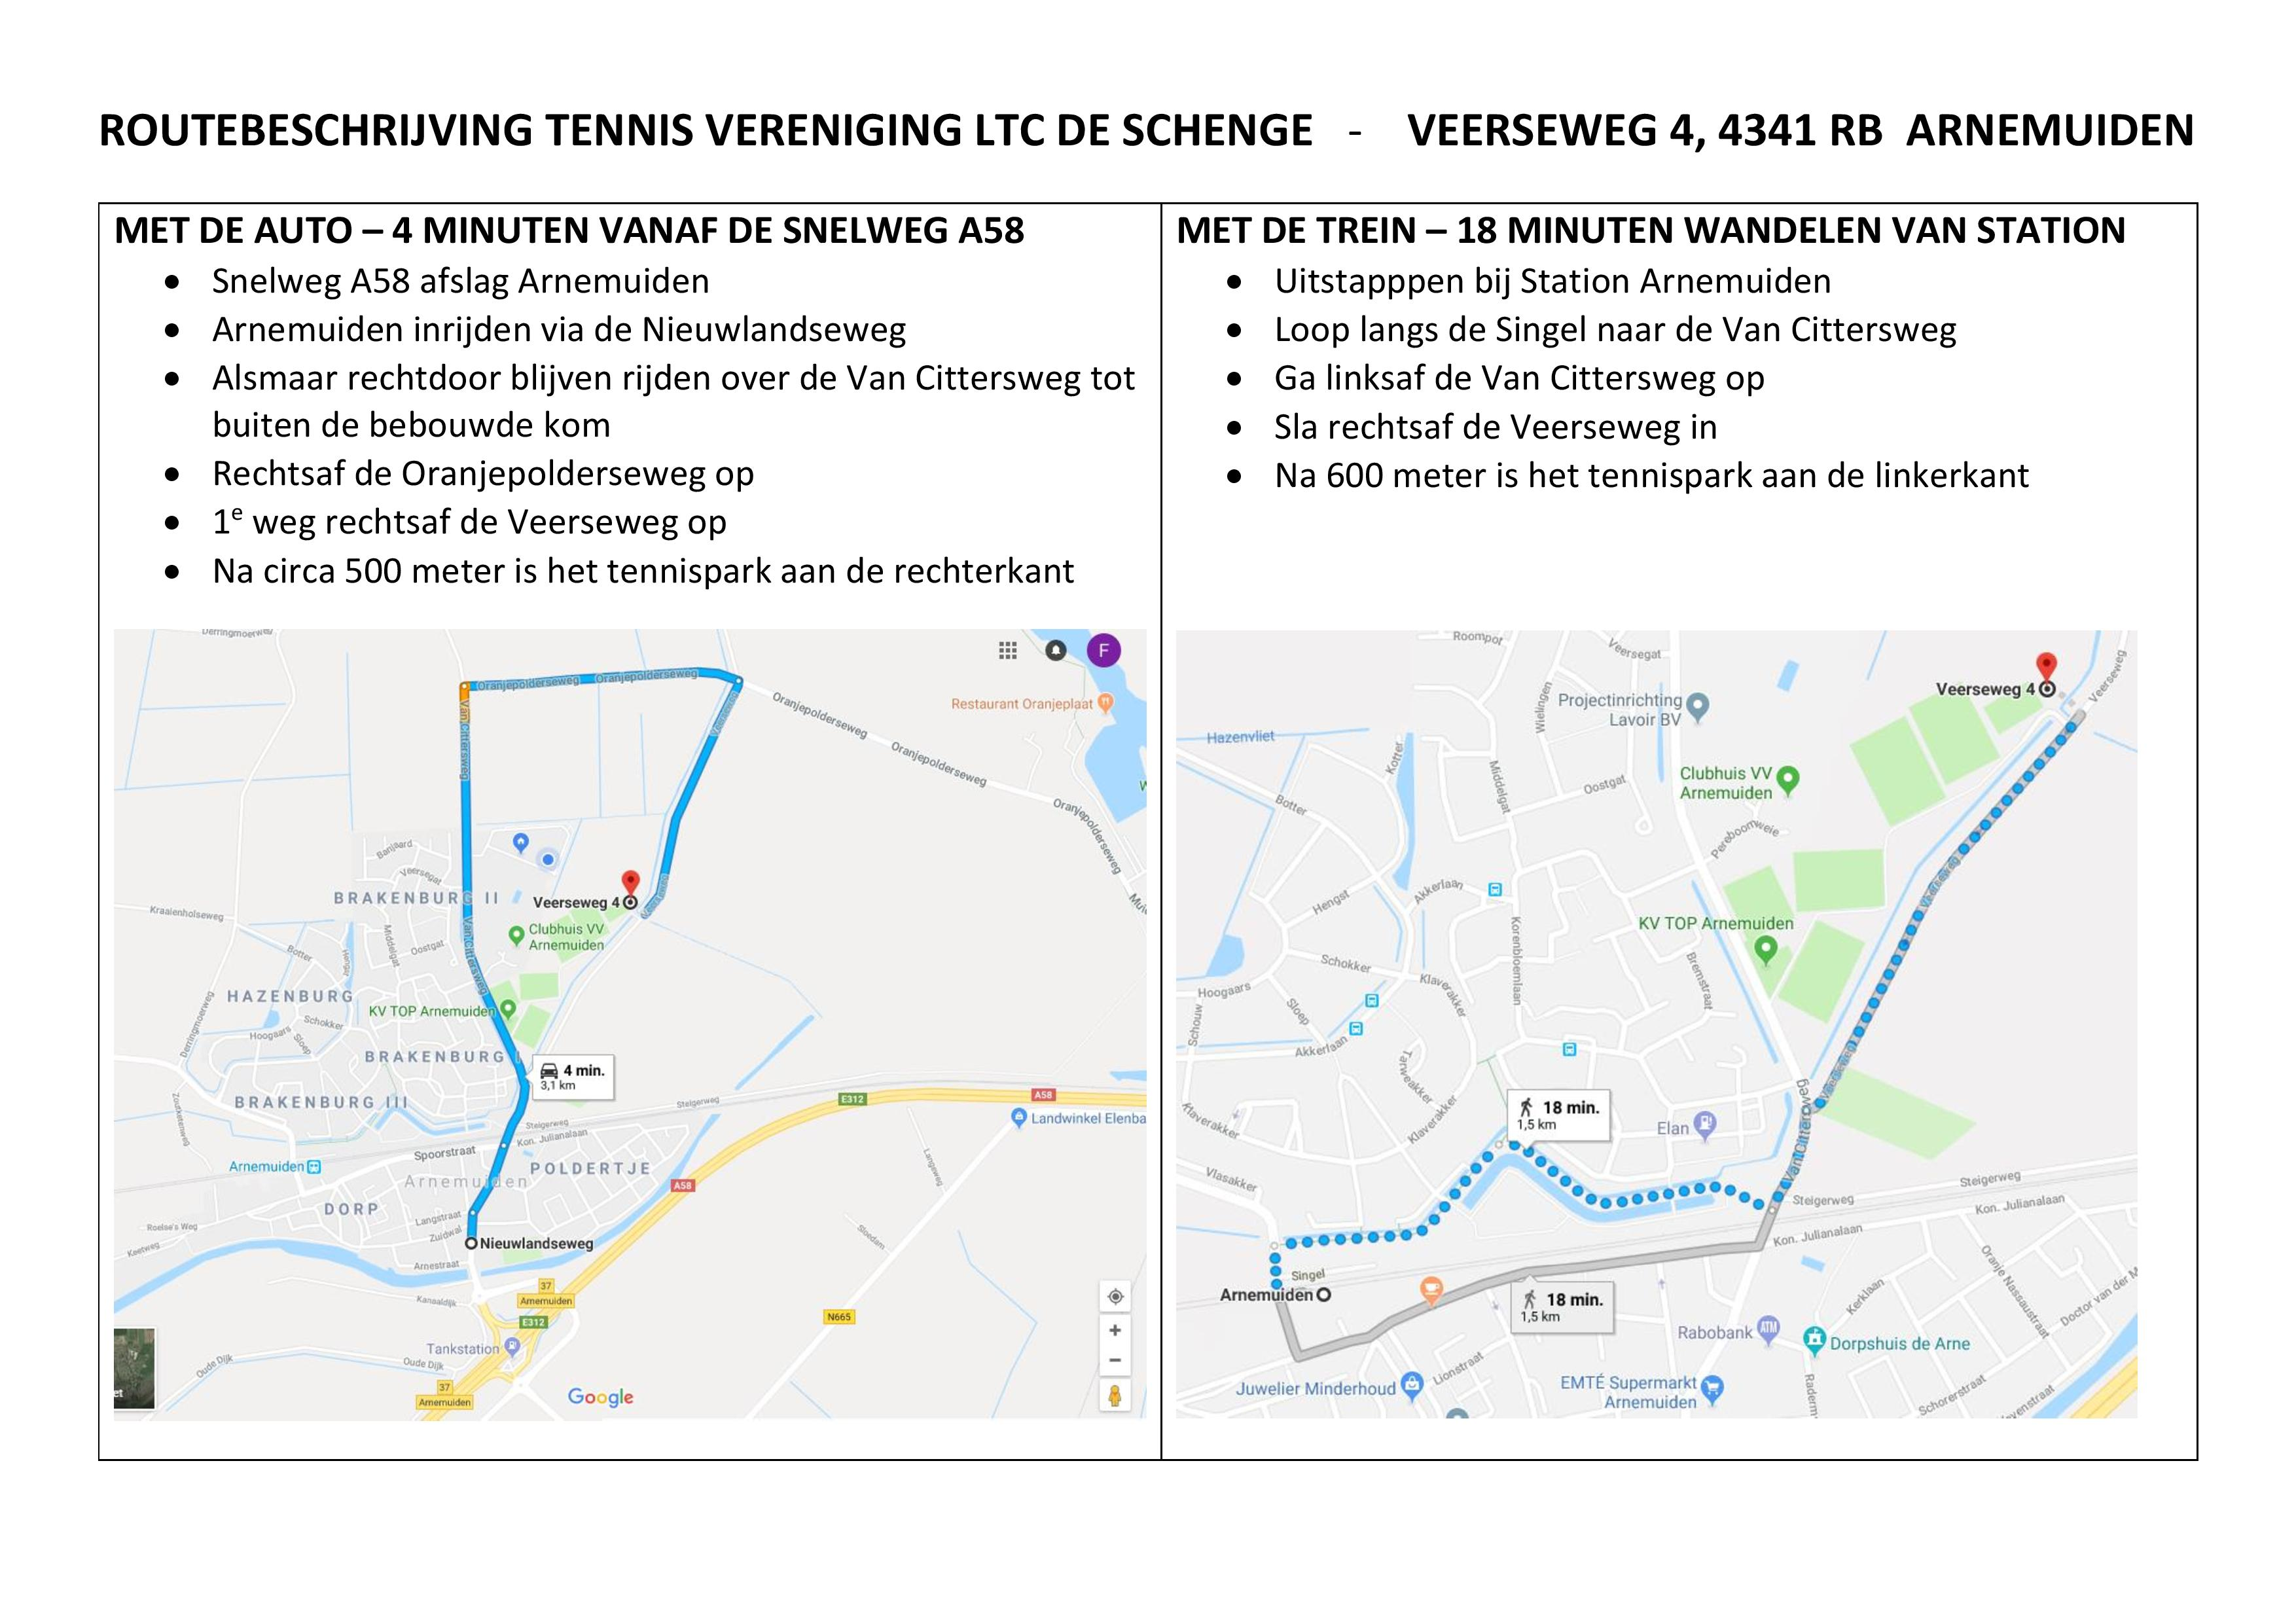 Route beschrijving